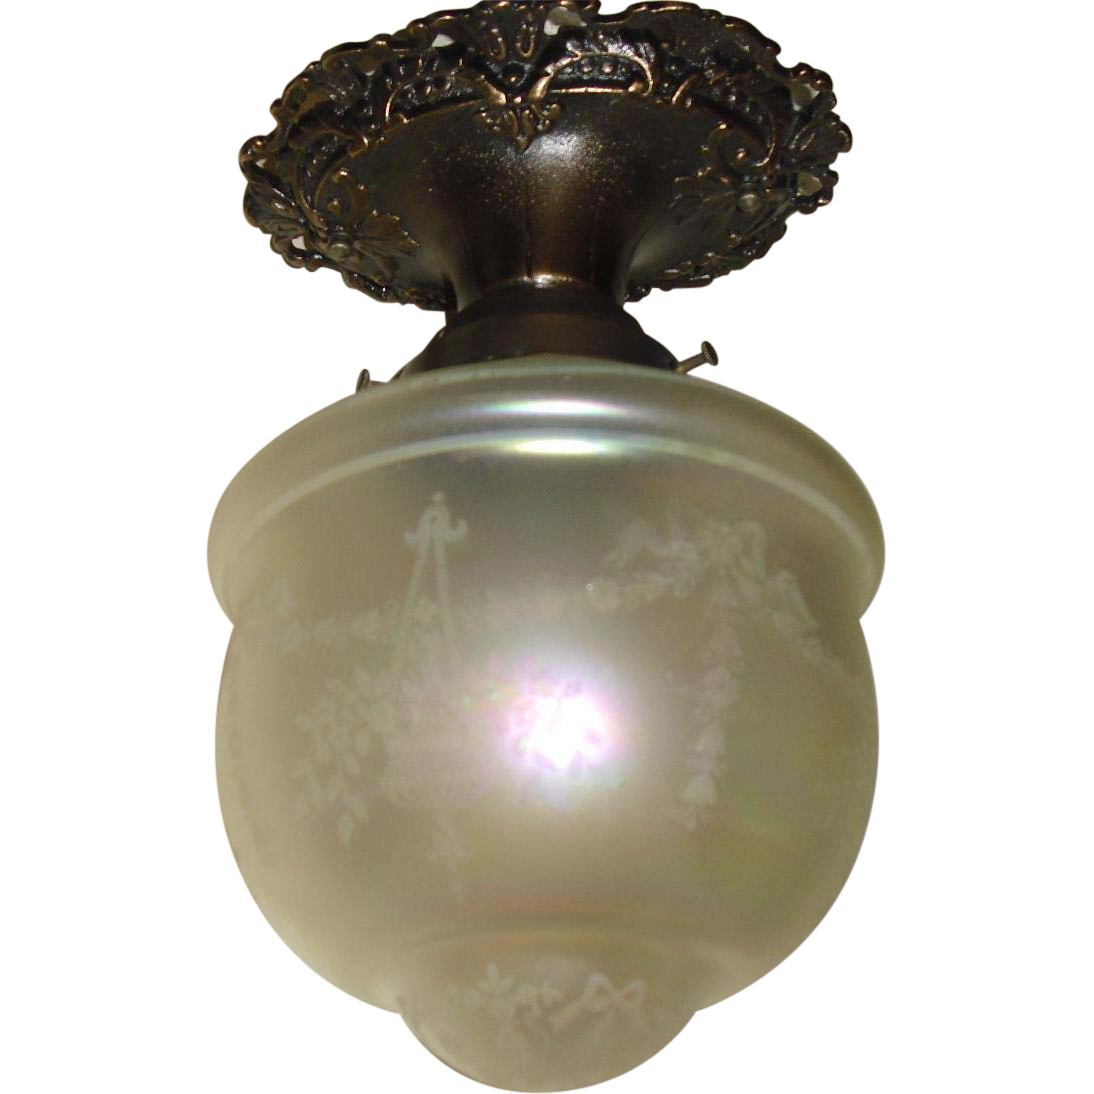 Victorian Ceiling Light - Fancy Bronze Fixture with Iridescent Acid Etched Shade